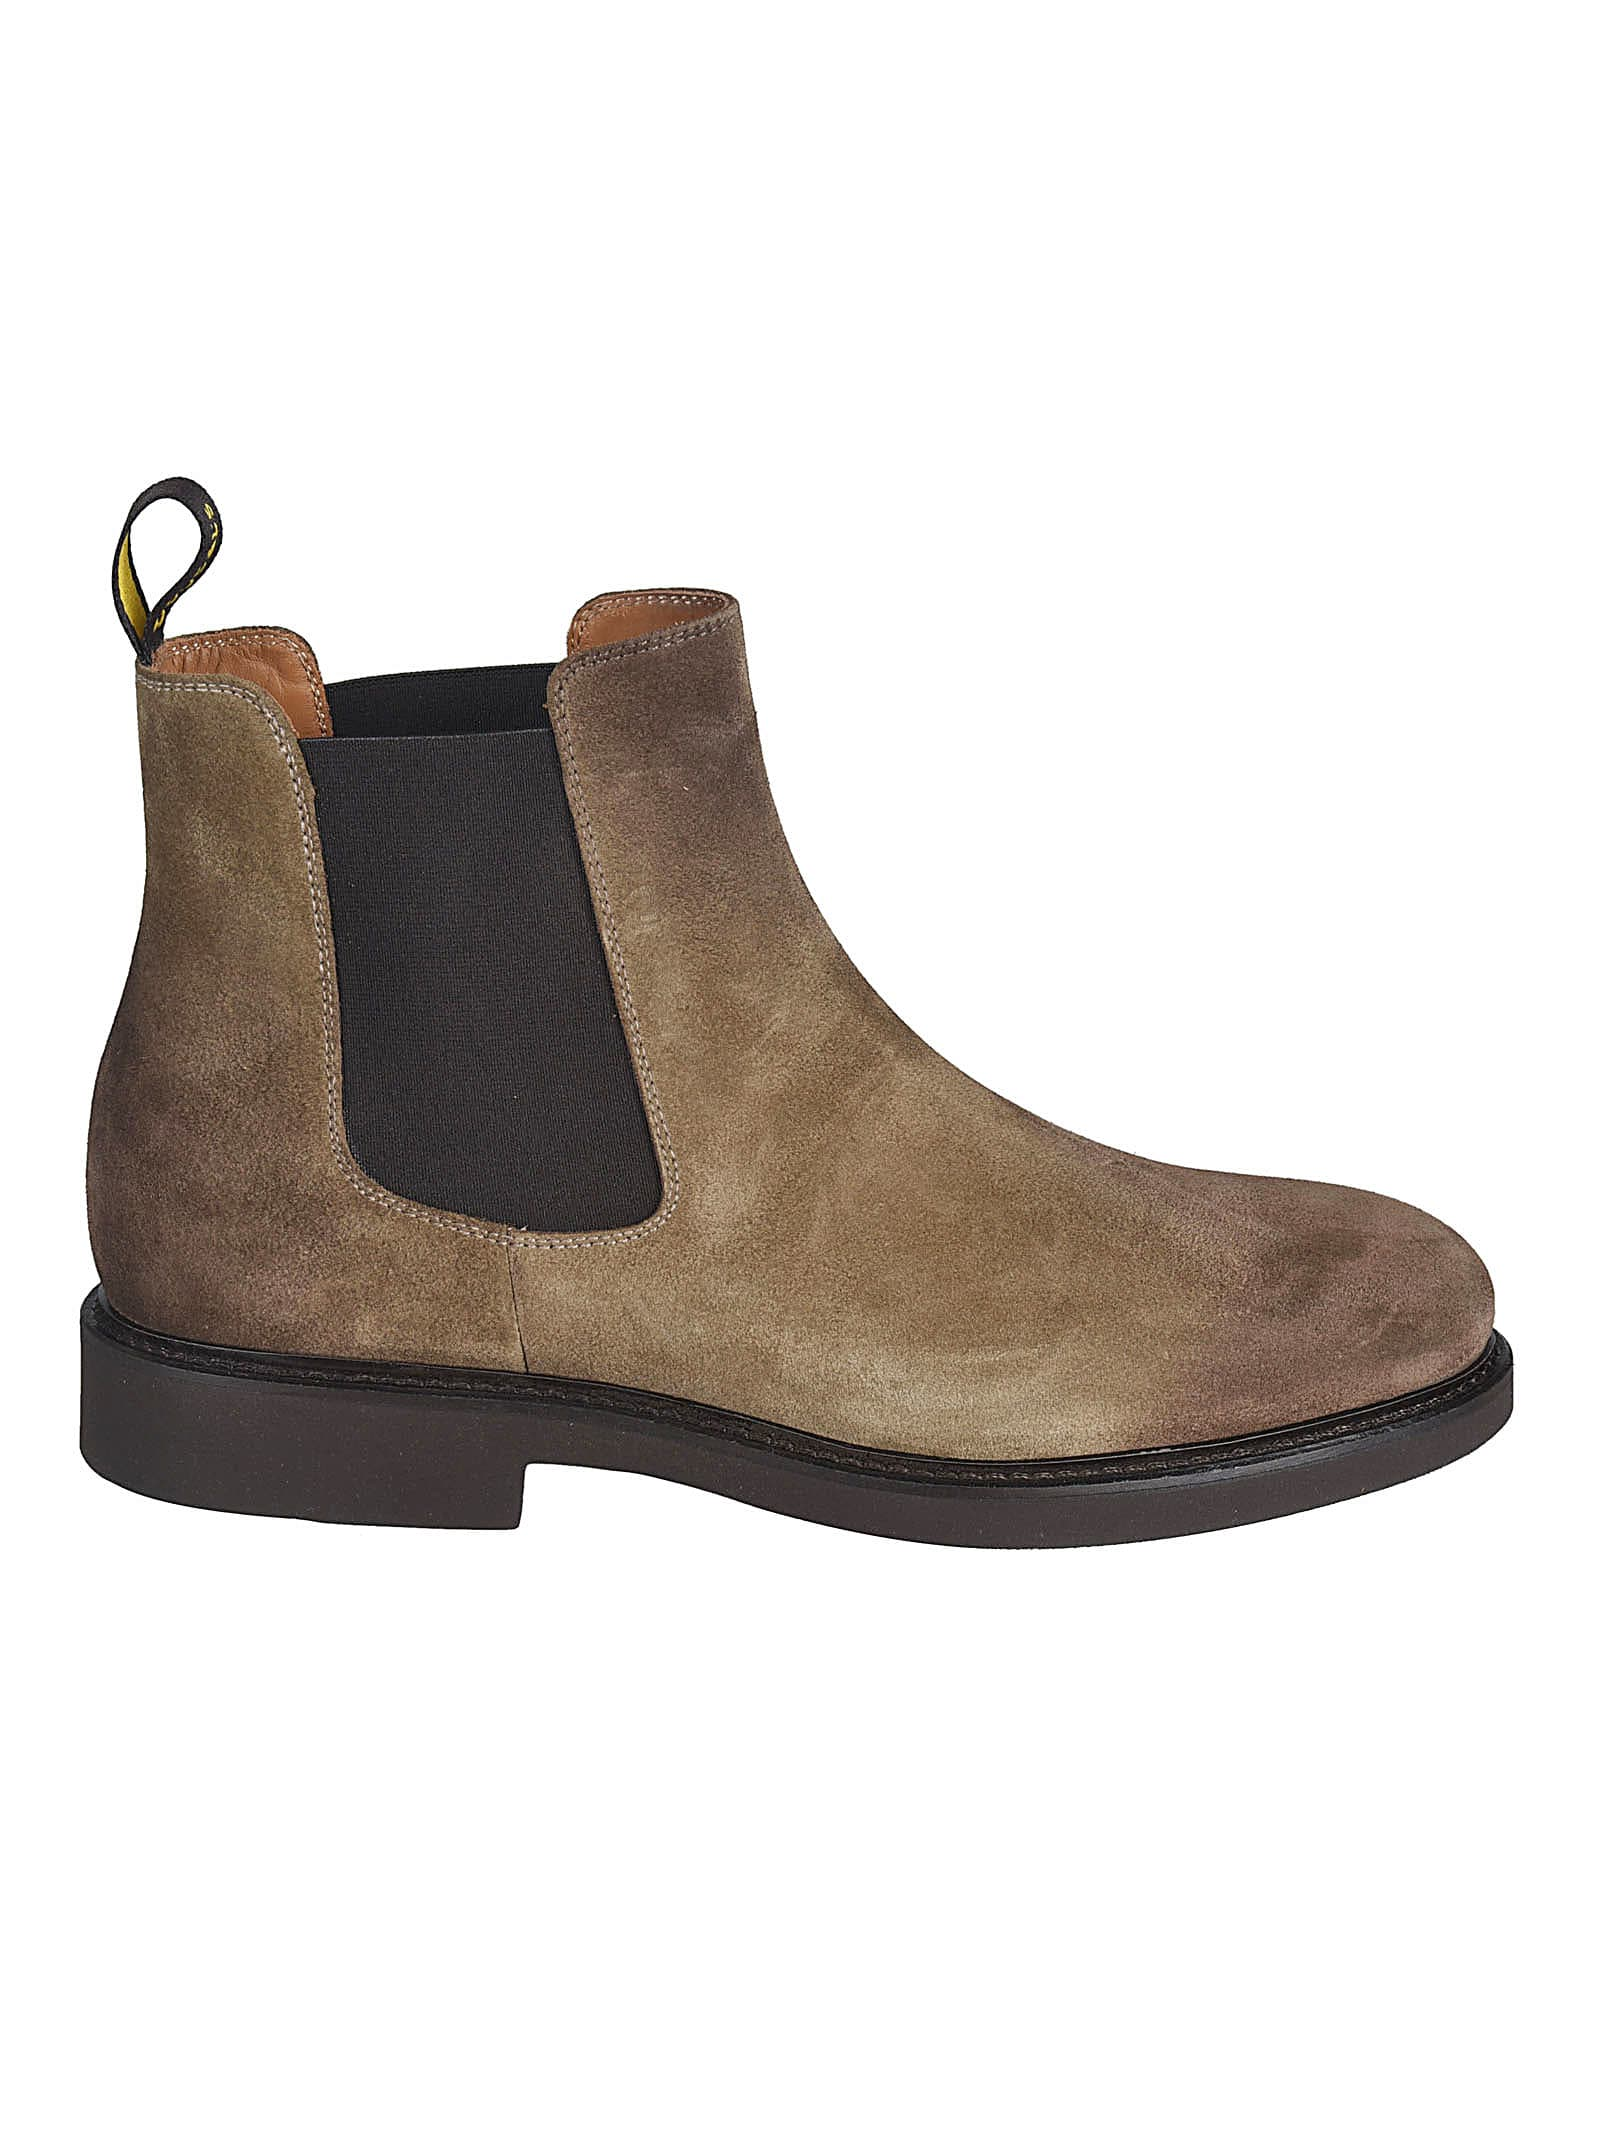 Doucals Chelsea Ankle Boots